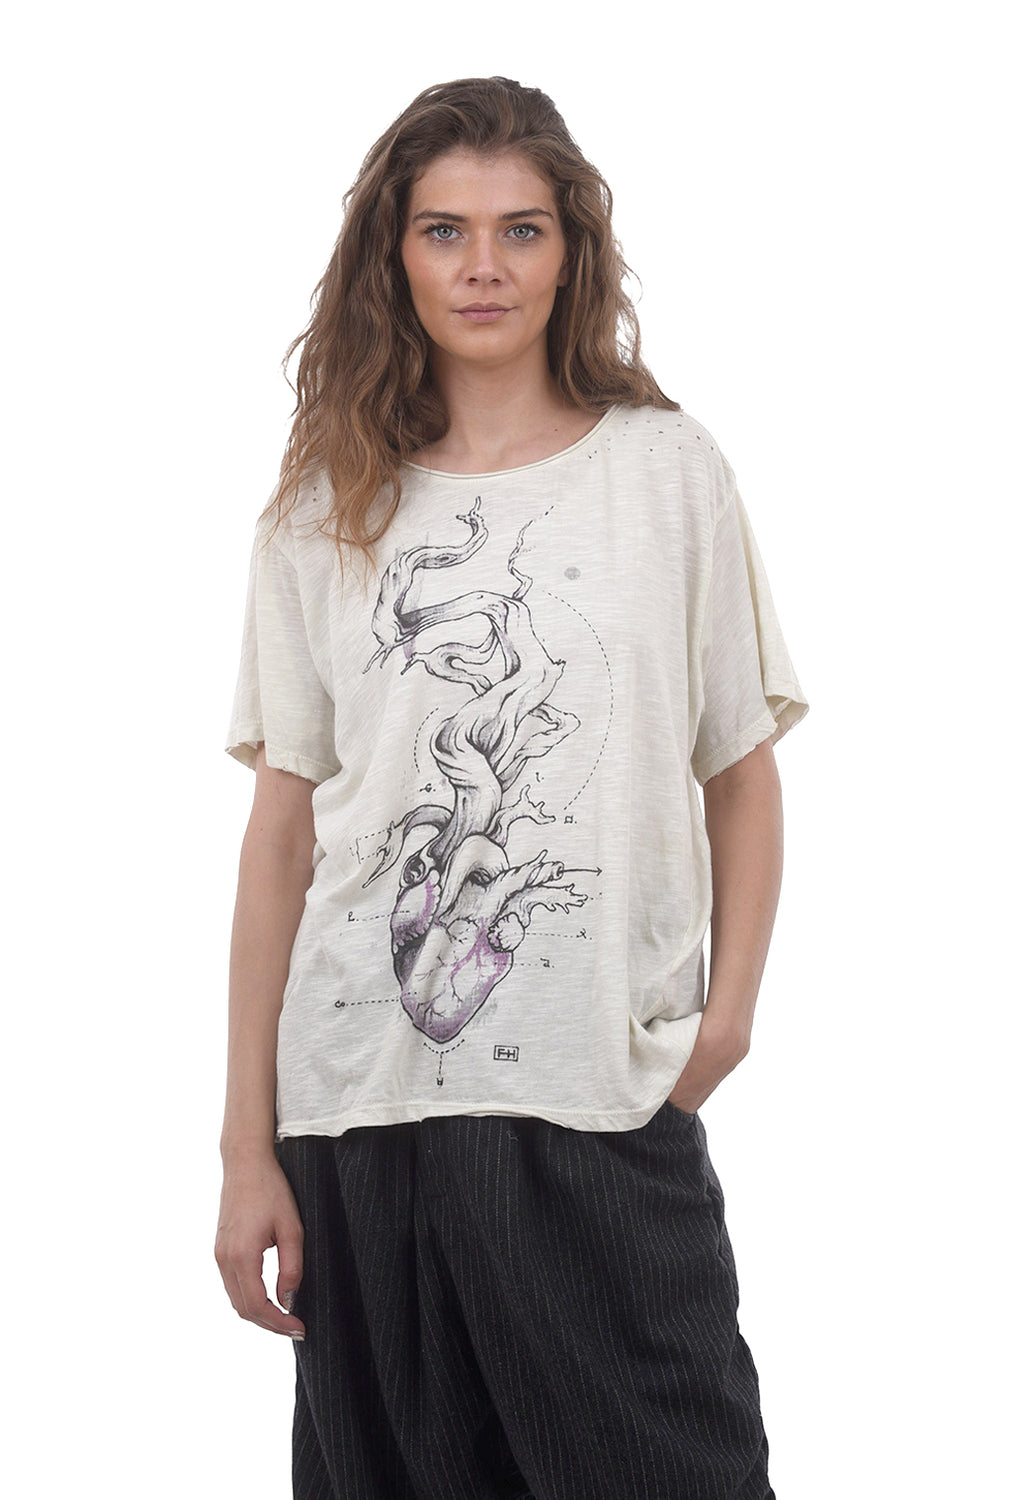 Magnolia Pearl New Boyfriend Tee, Tree of Love One Size Off-White